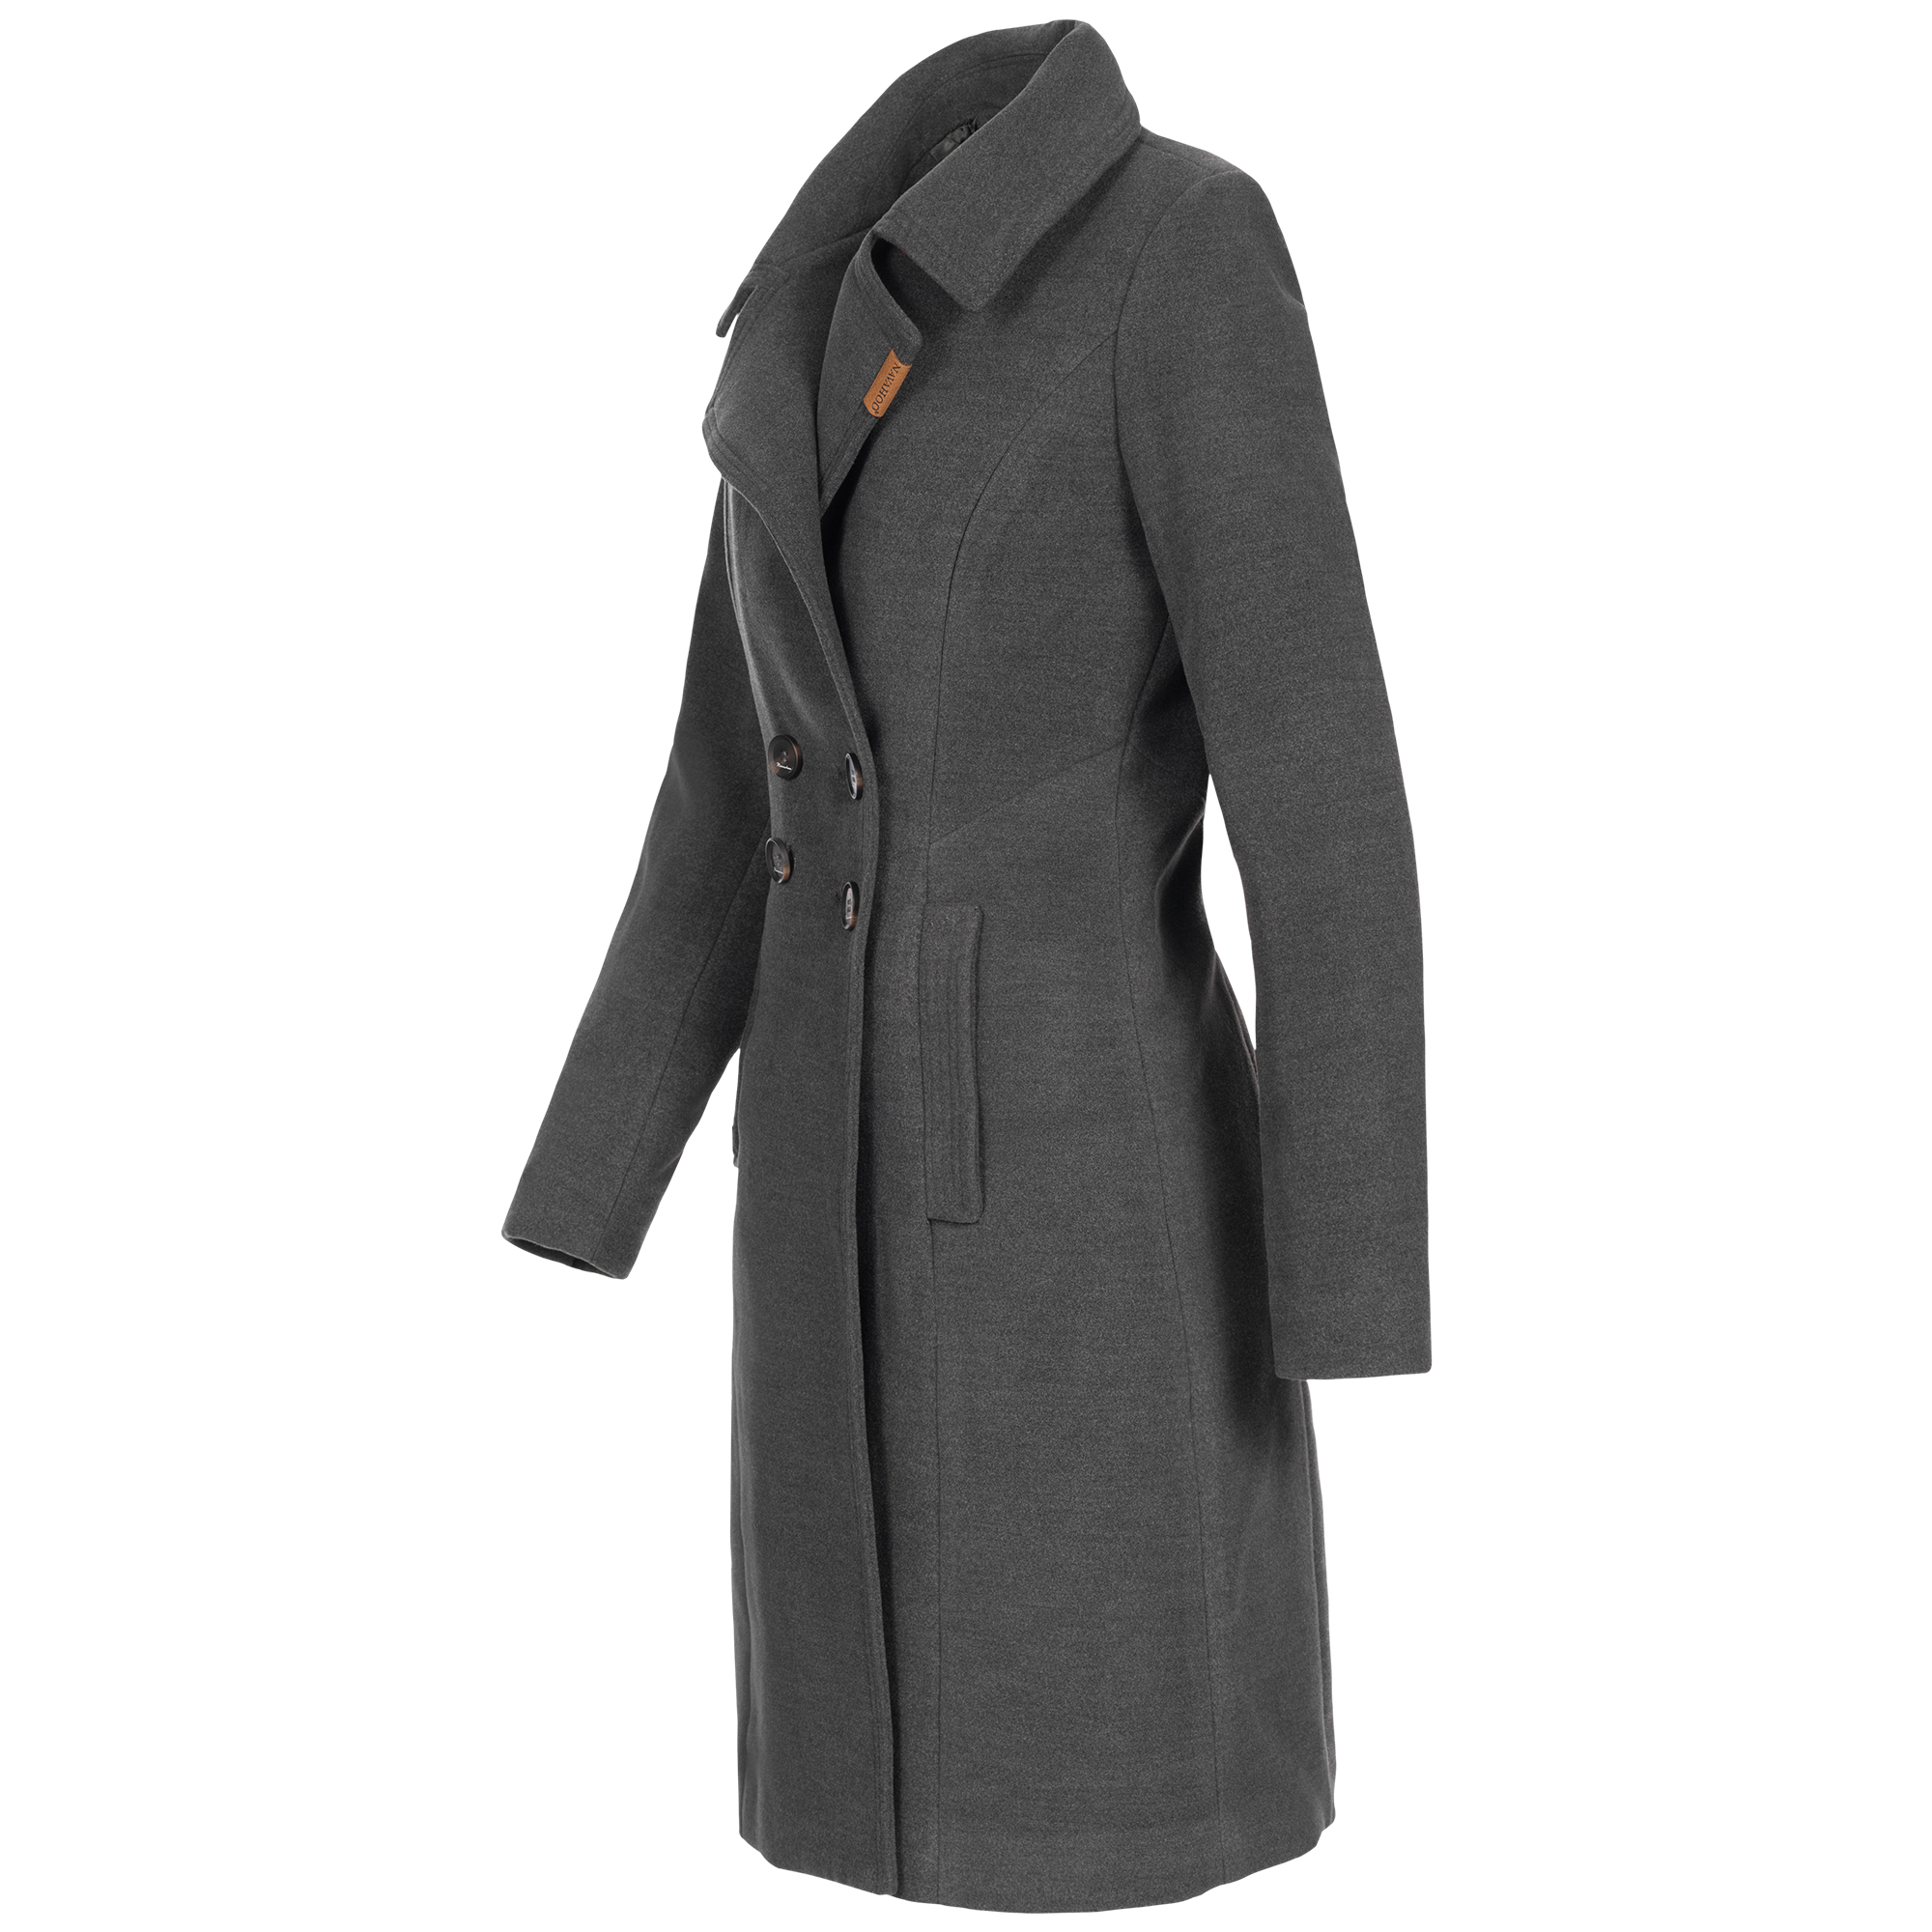 timeless design 71725 2be88 Navahoo Damen Mantel Wollmantel Wintermantel Jacke Trenchcoat warm Parka  lang Wooly XS-XXL 5-Farben